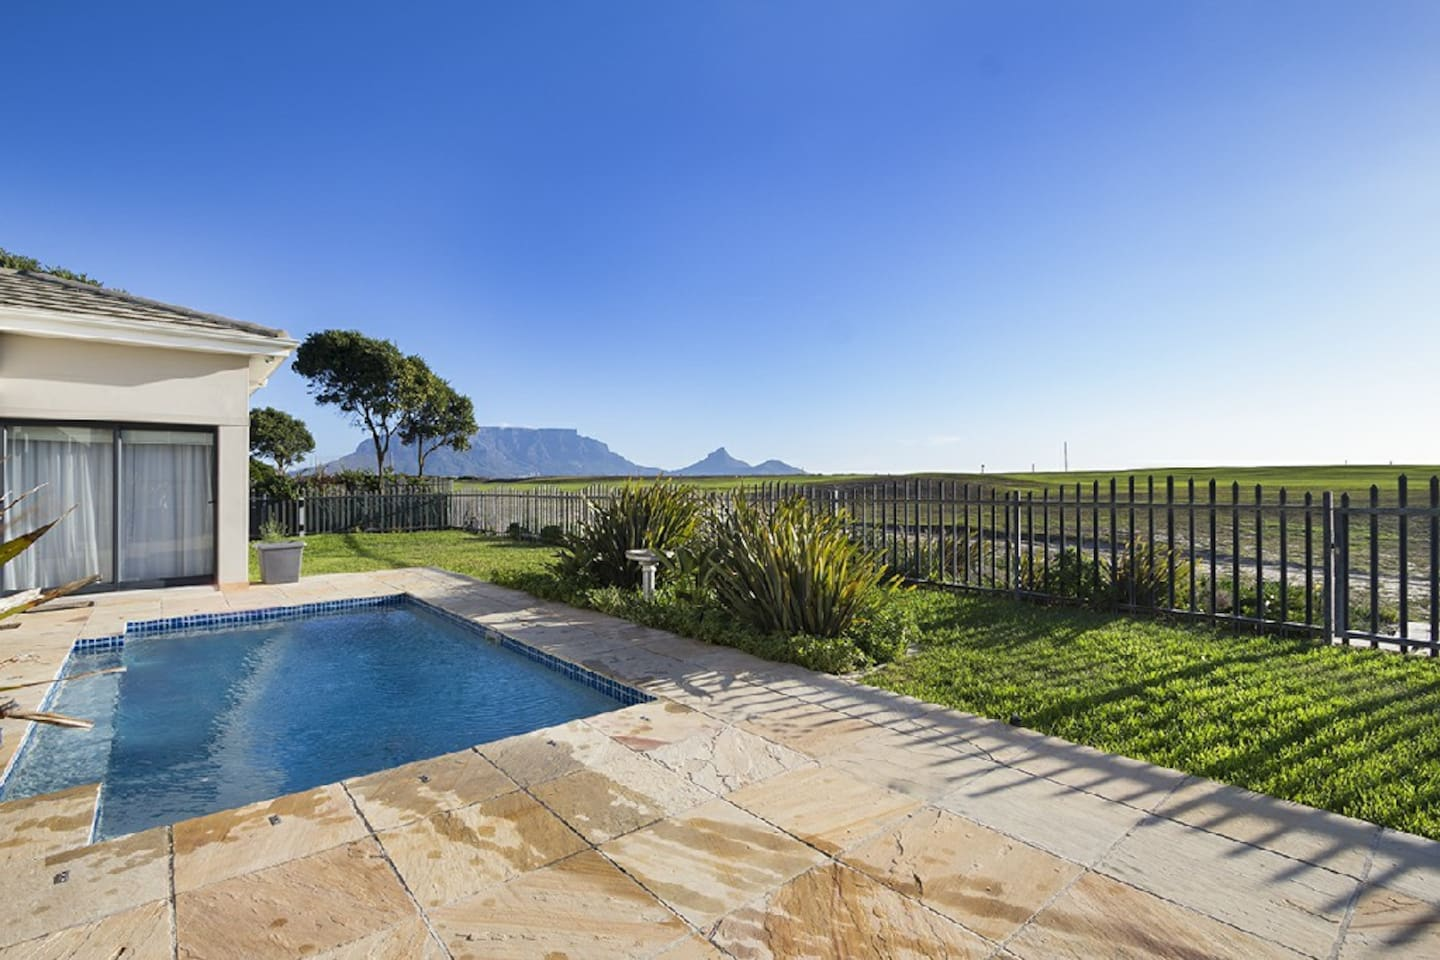 Swimming Pool; Golf Course/Ocean/Table Mountain View